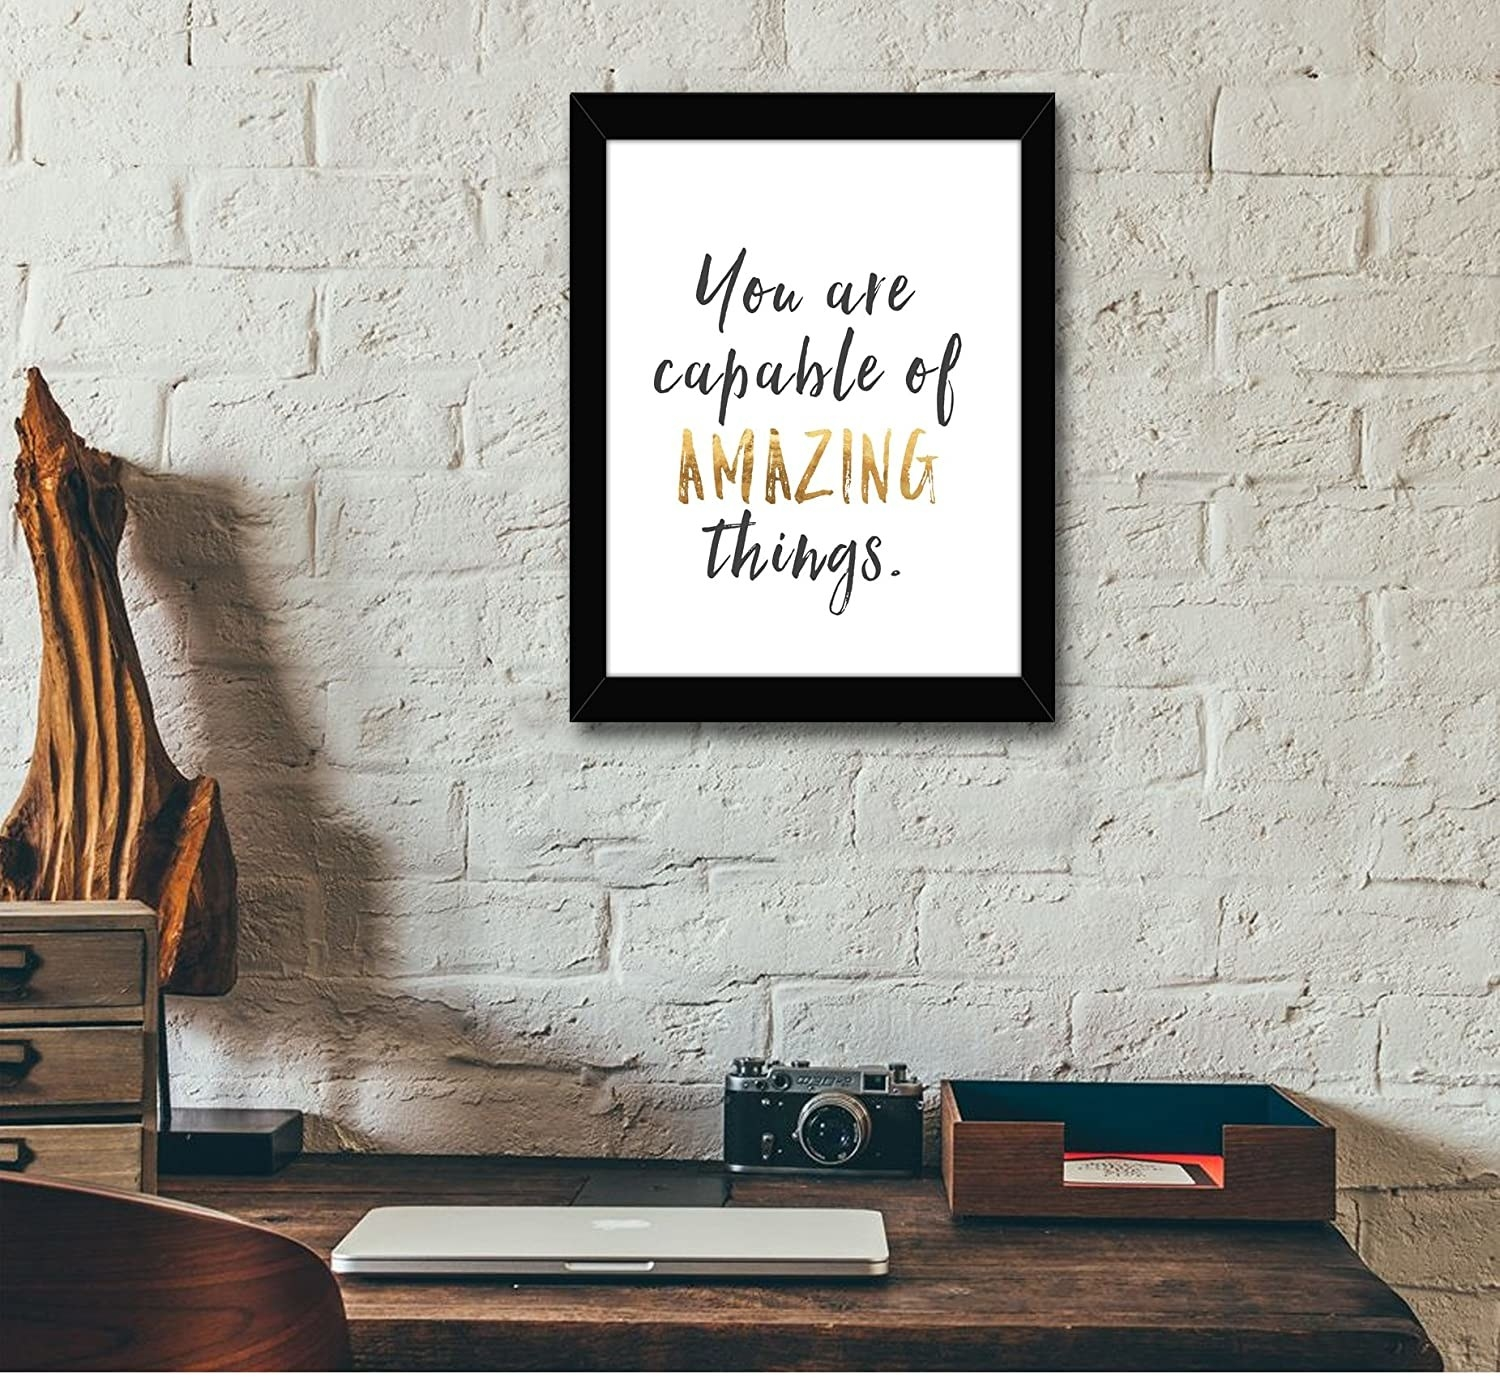 """The frame reads, """"You are capable of amazing things""""."""